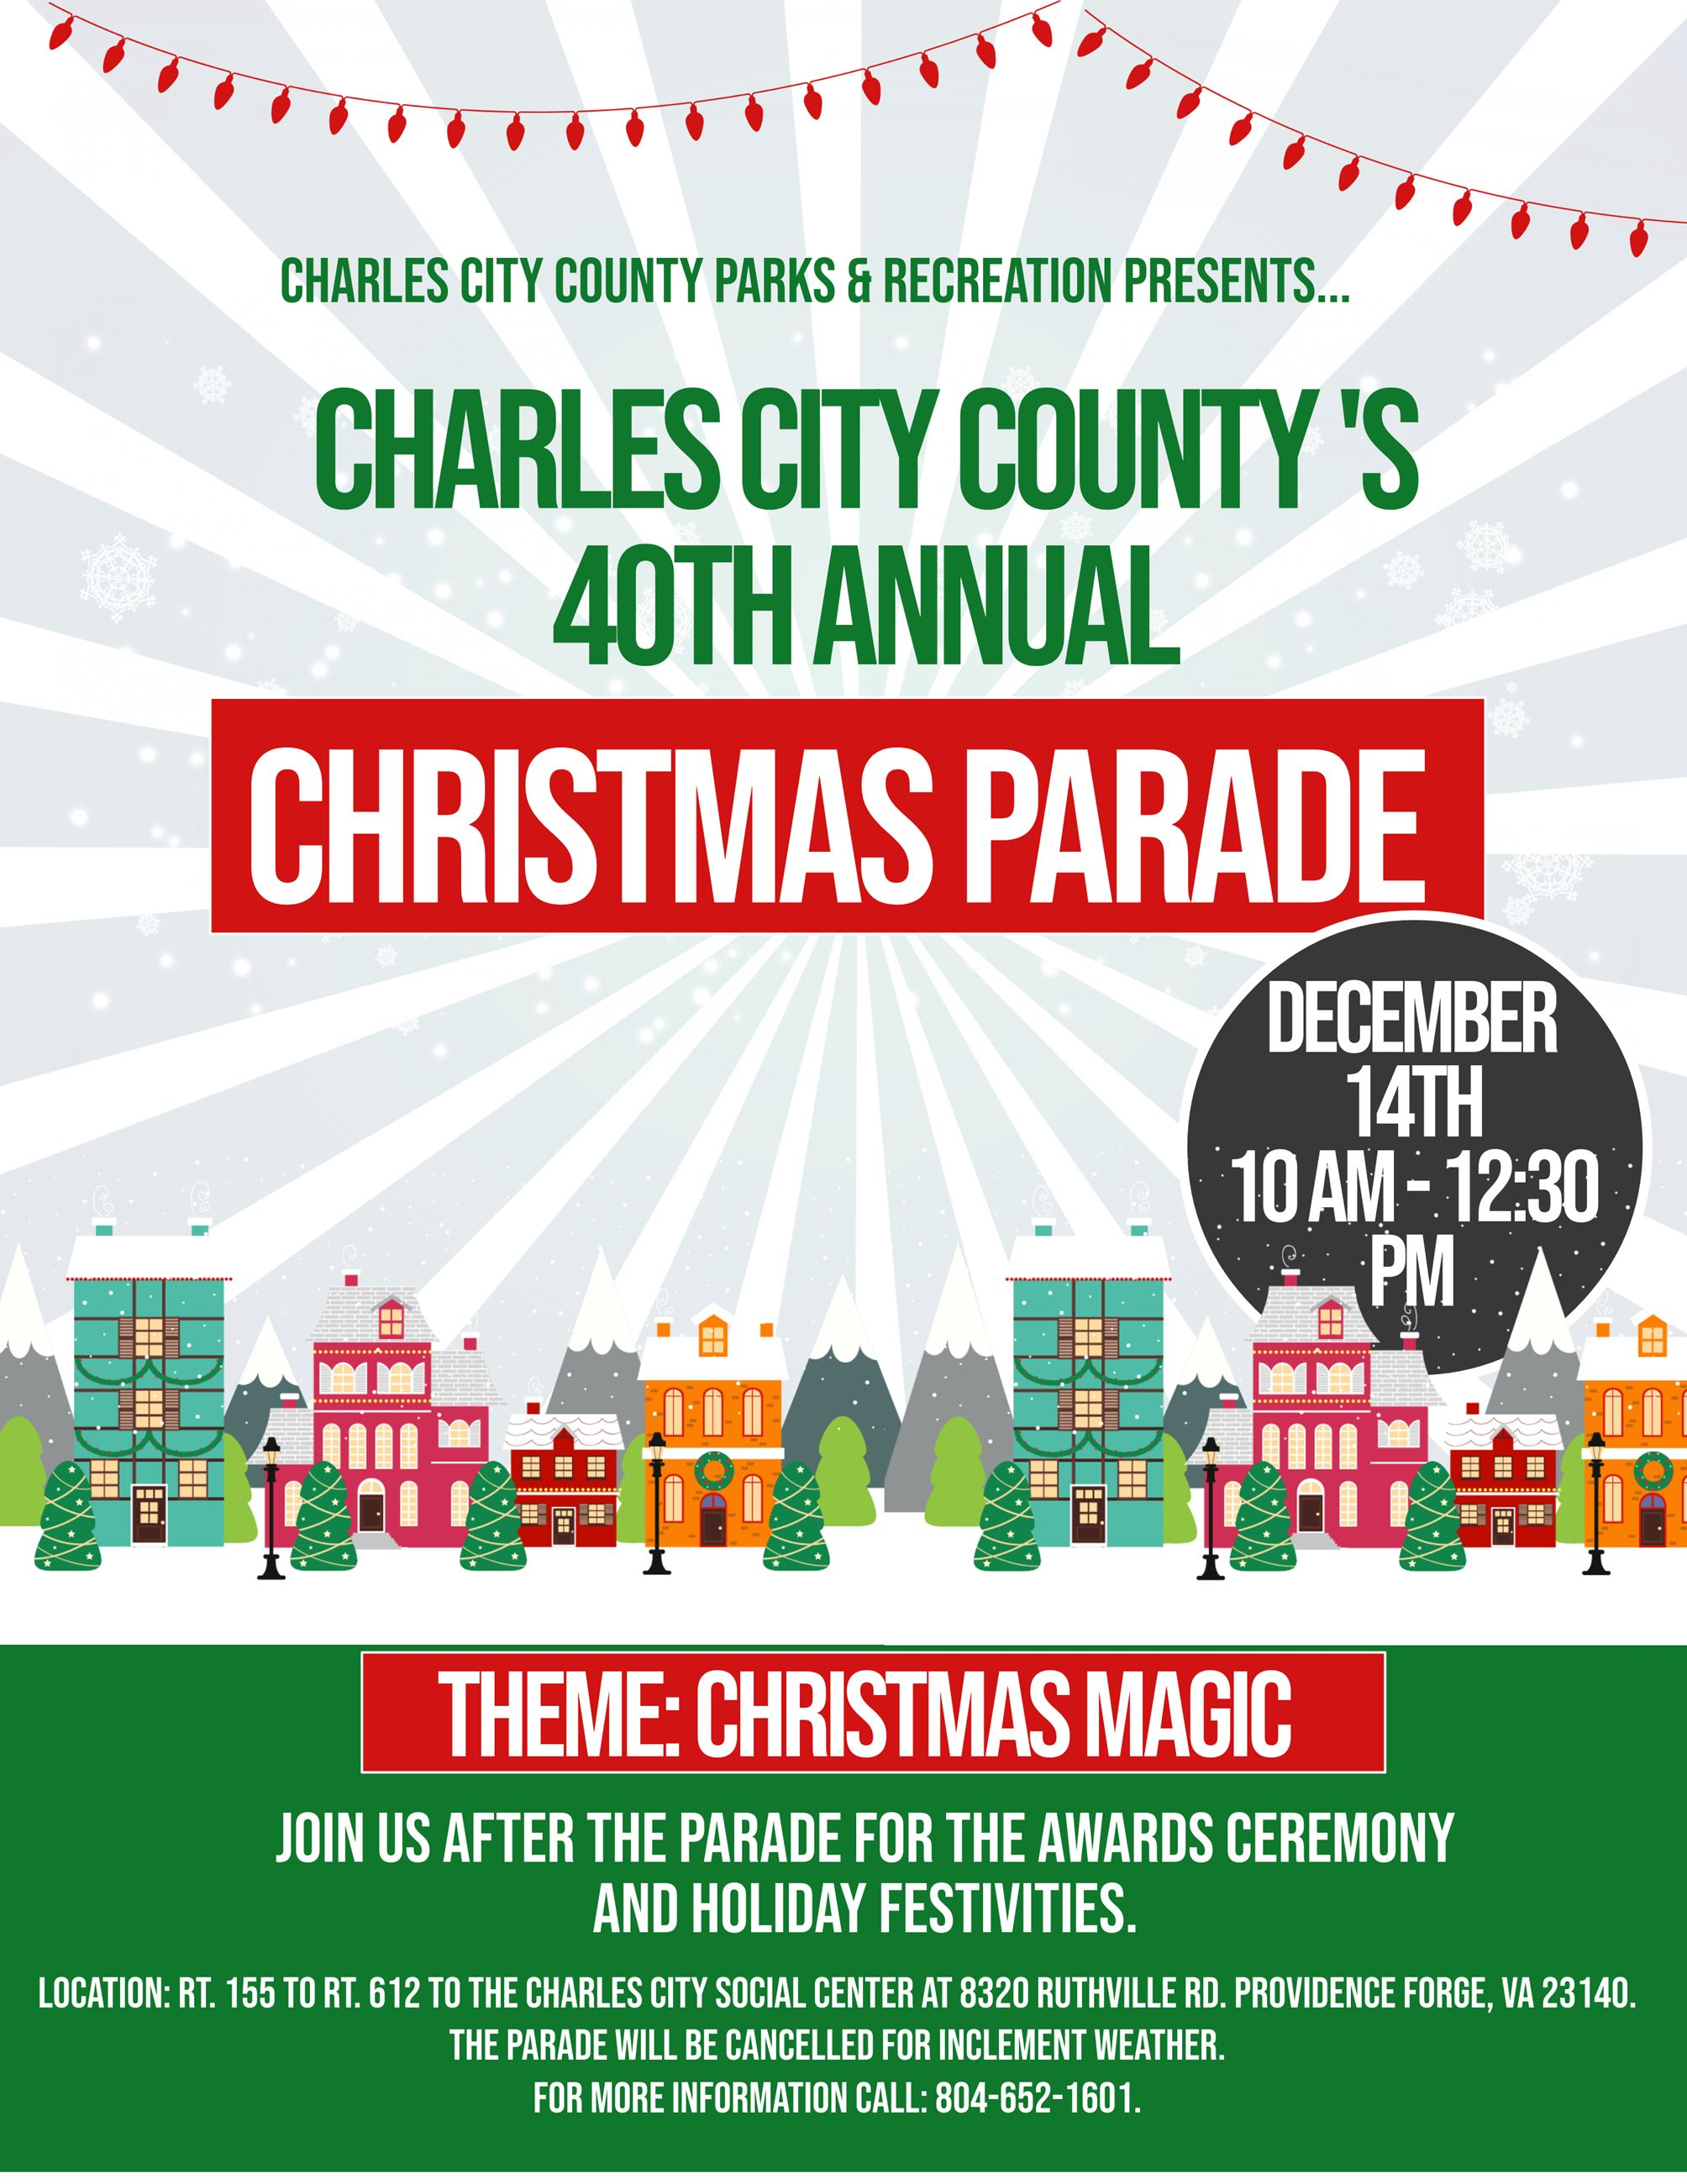 2019 Christmas Parade flyer